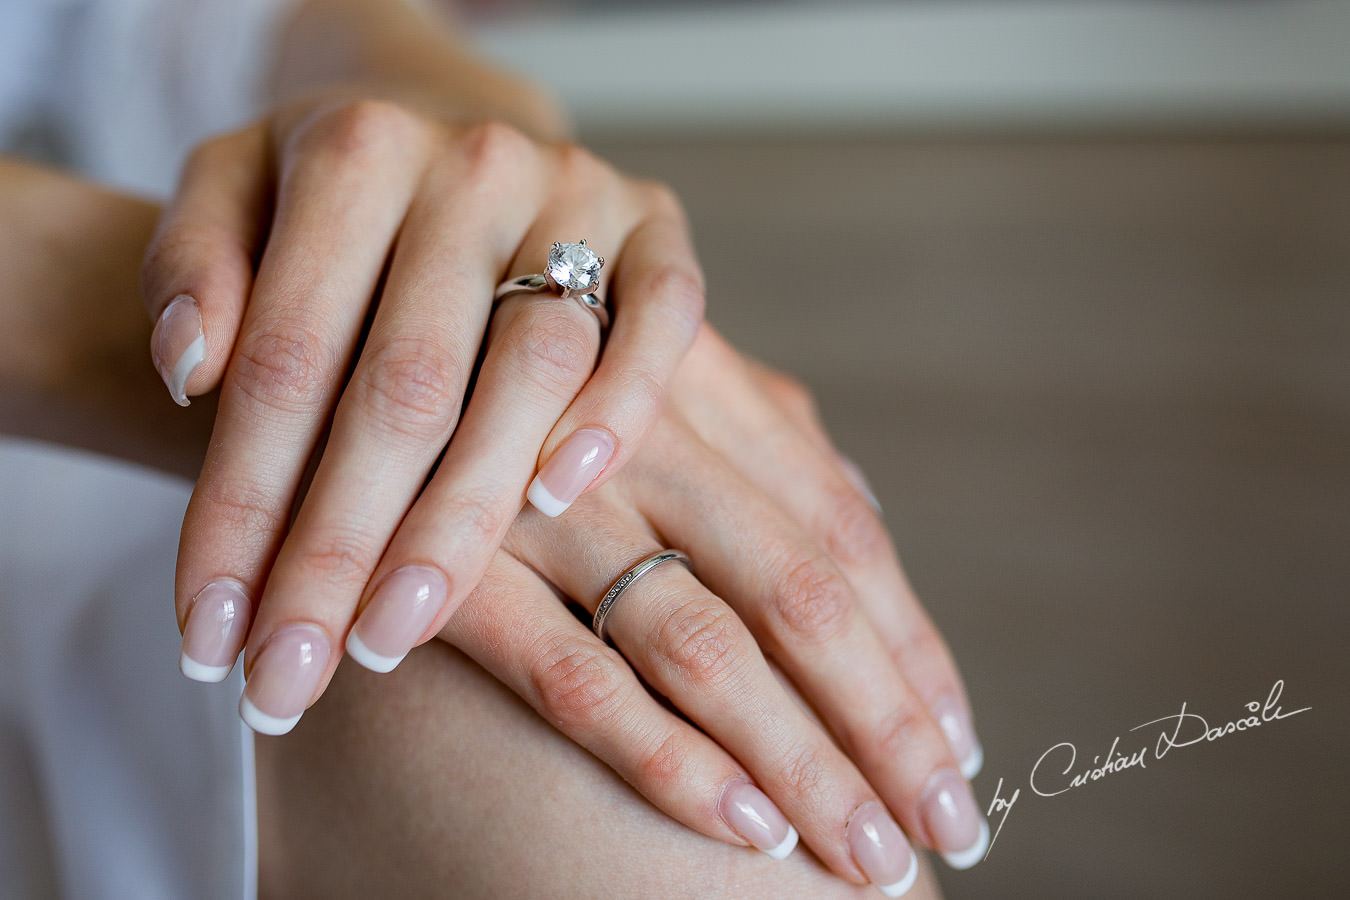 Wedding engagement ring captured during an Exquisite Wedding at Asterias Beach Hotel by Cyprus Photographer Cristian Dascalu.